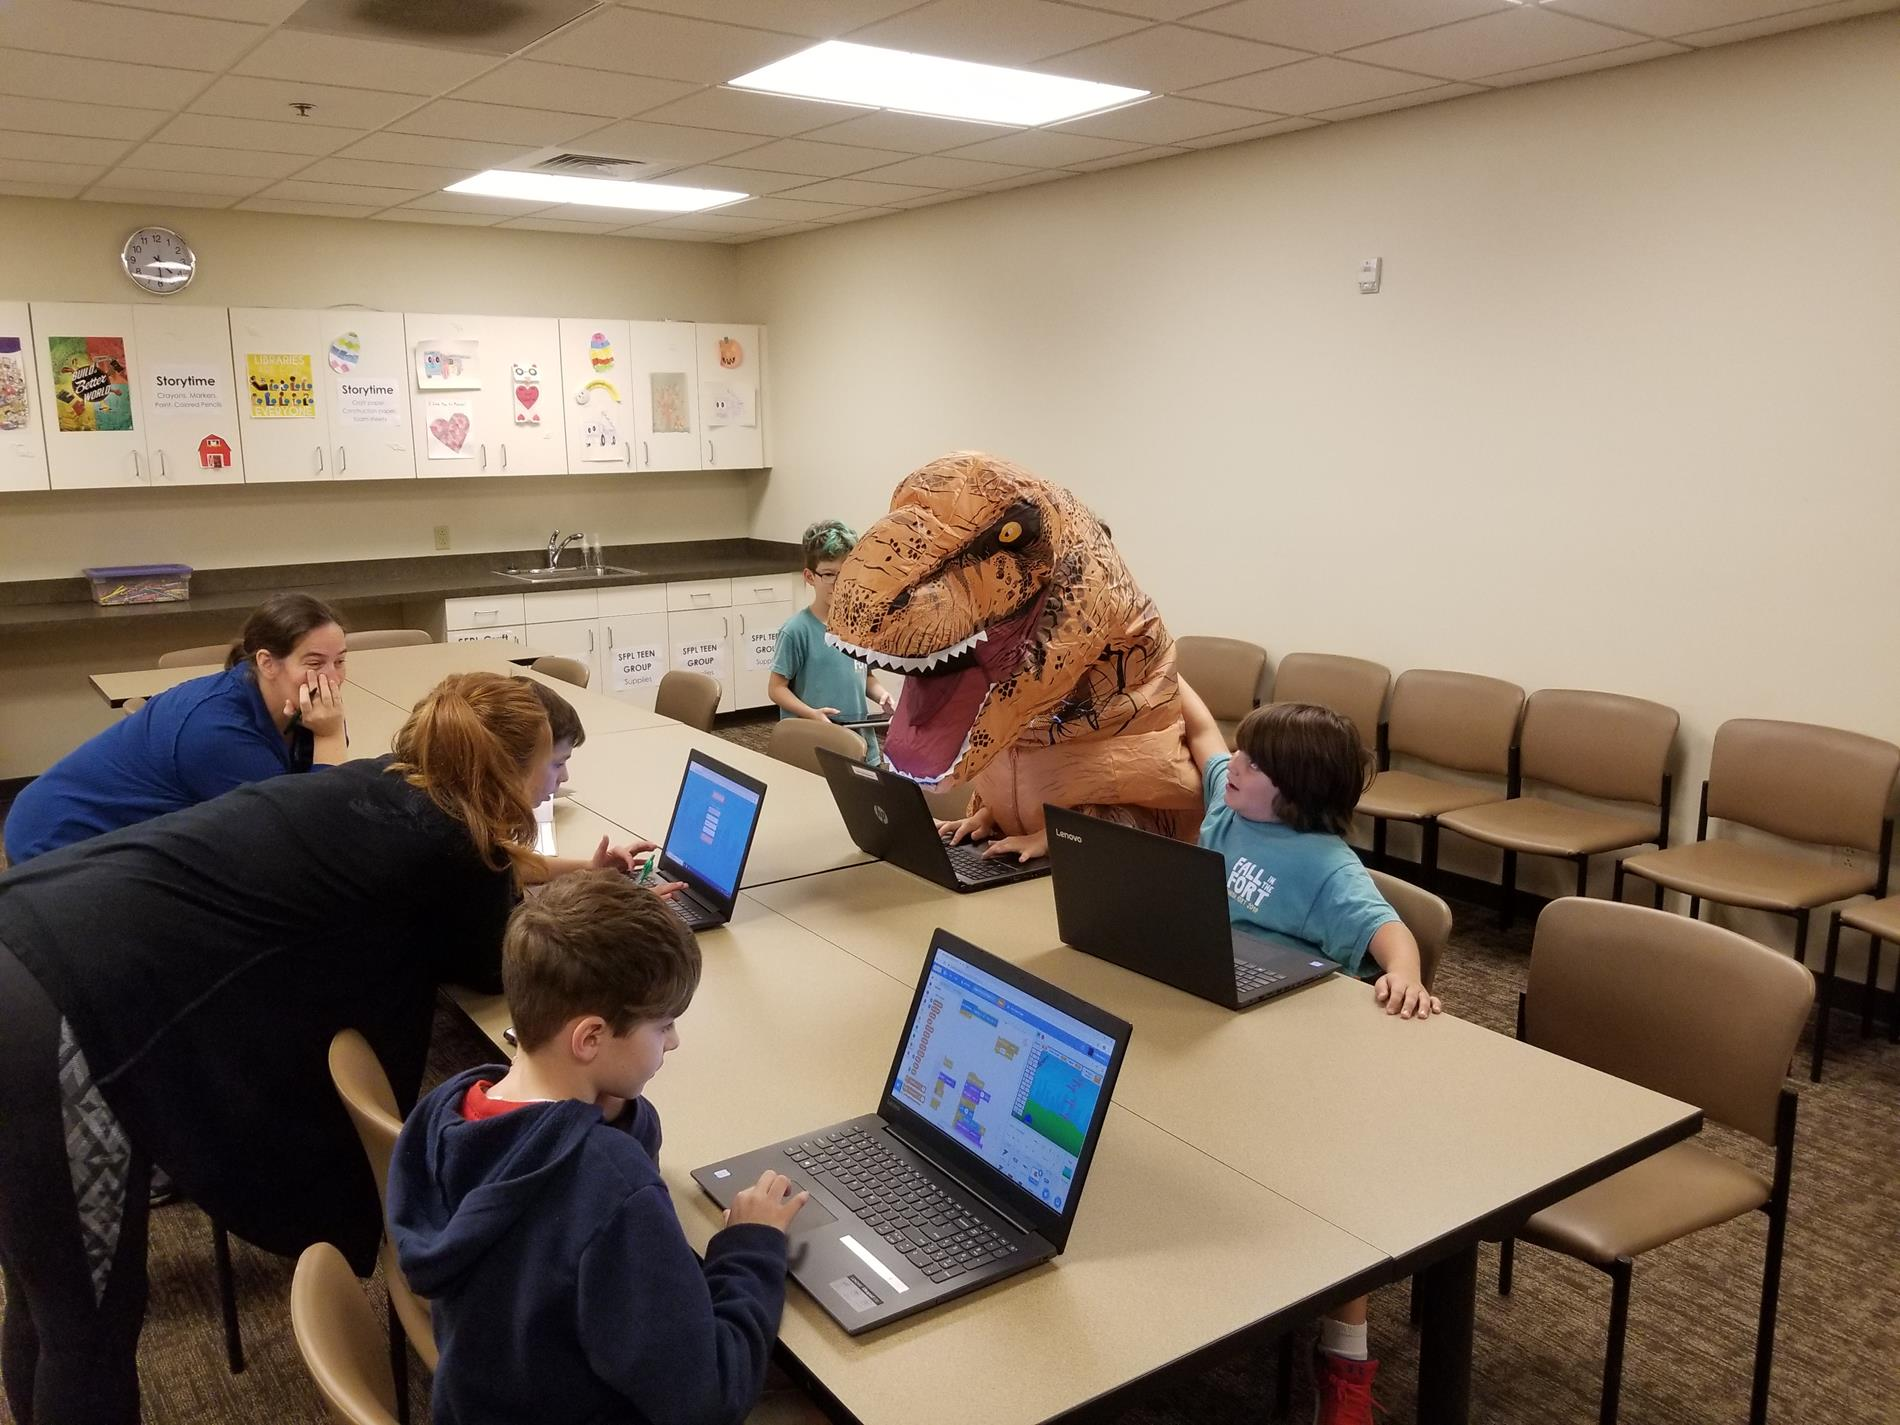 Children and a child in an inflatable T-rex costume sitting at tables working at open laptops